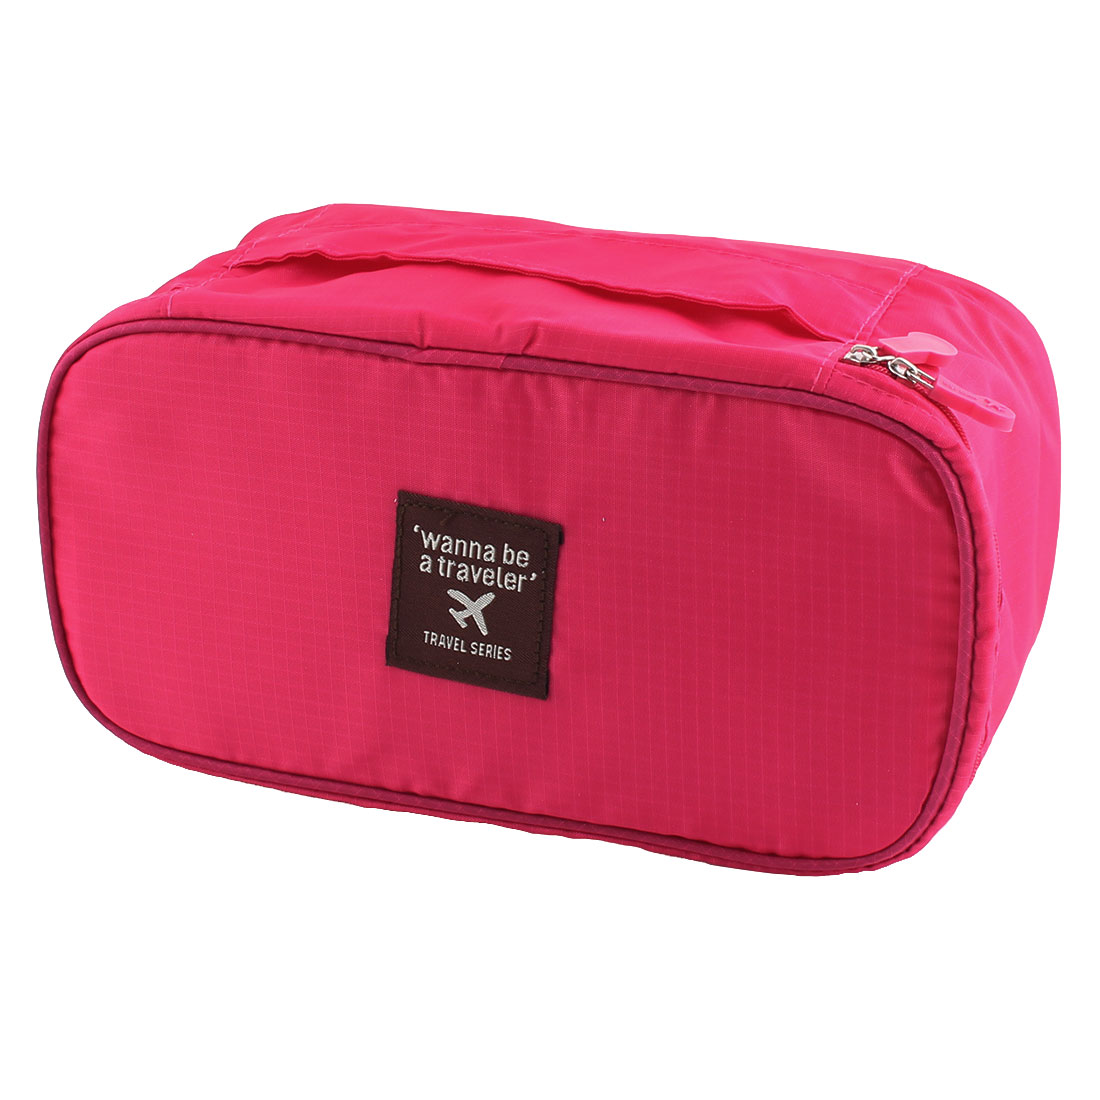 Travelling Business Trip Socks Underwear Bra Organizer Packing Bag Case Container Magenta